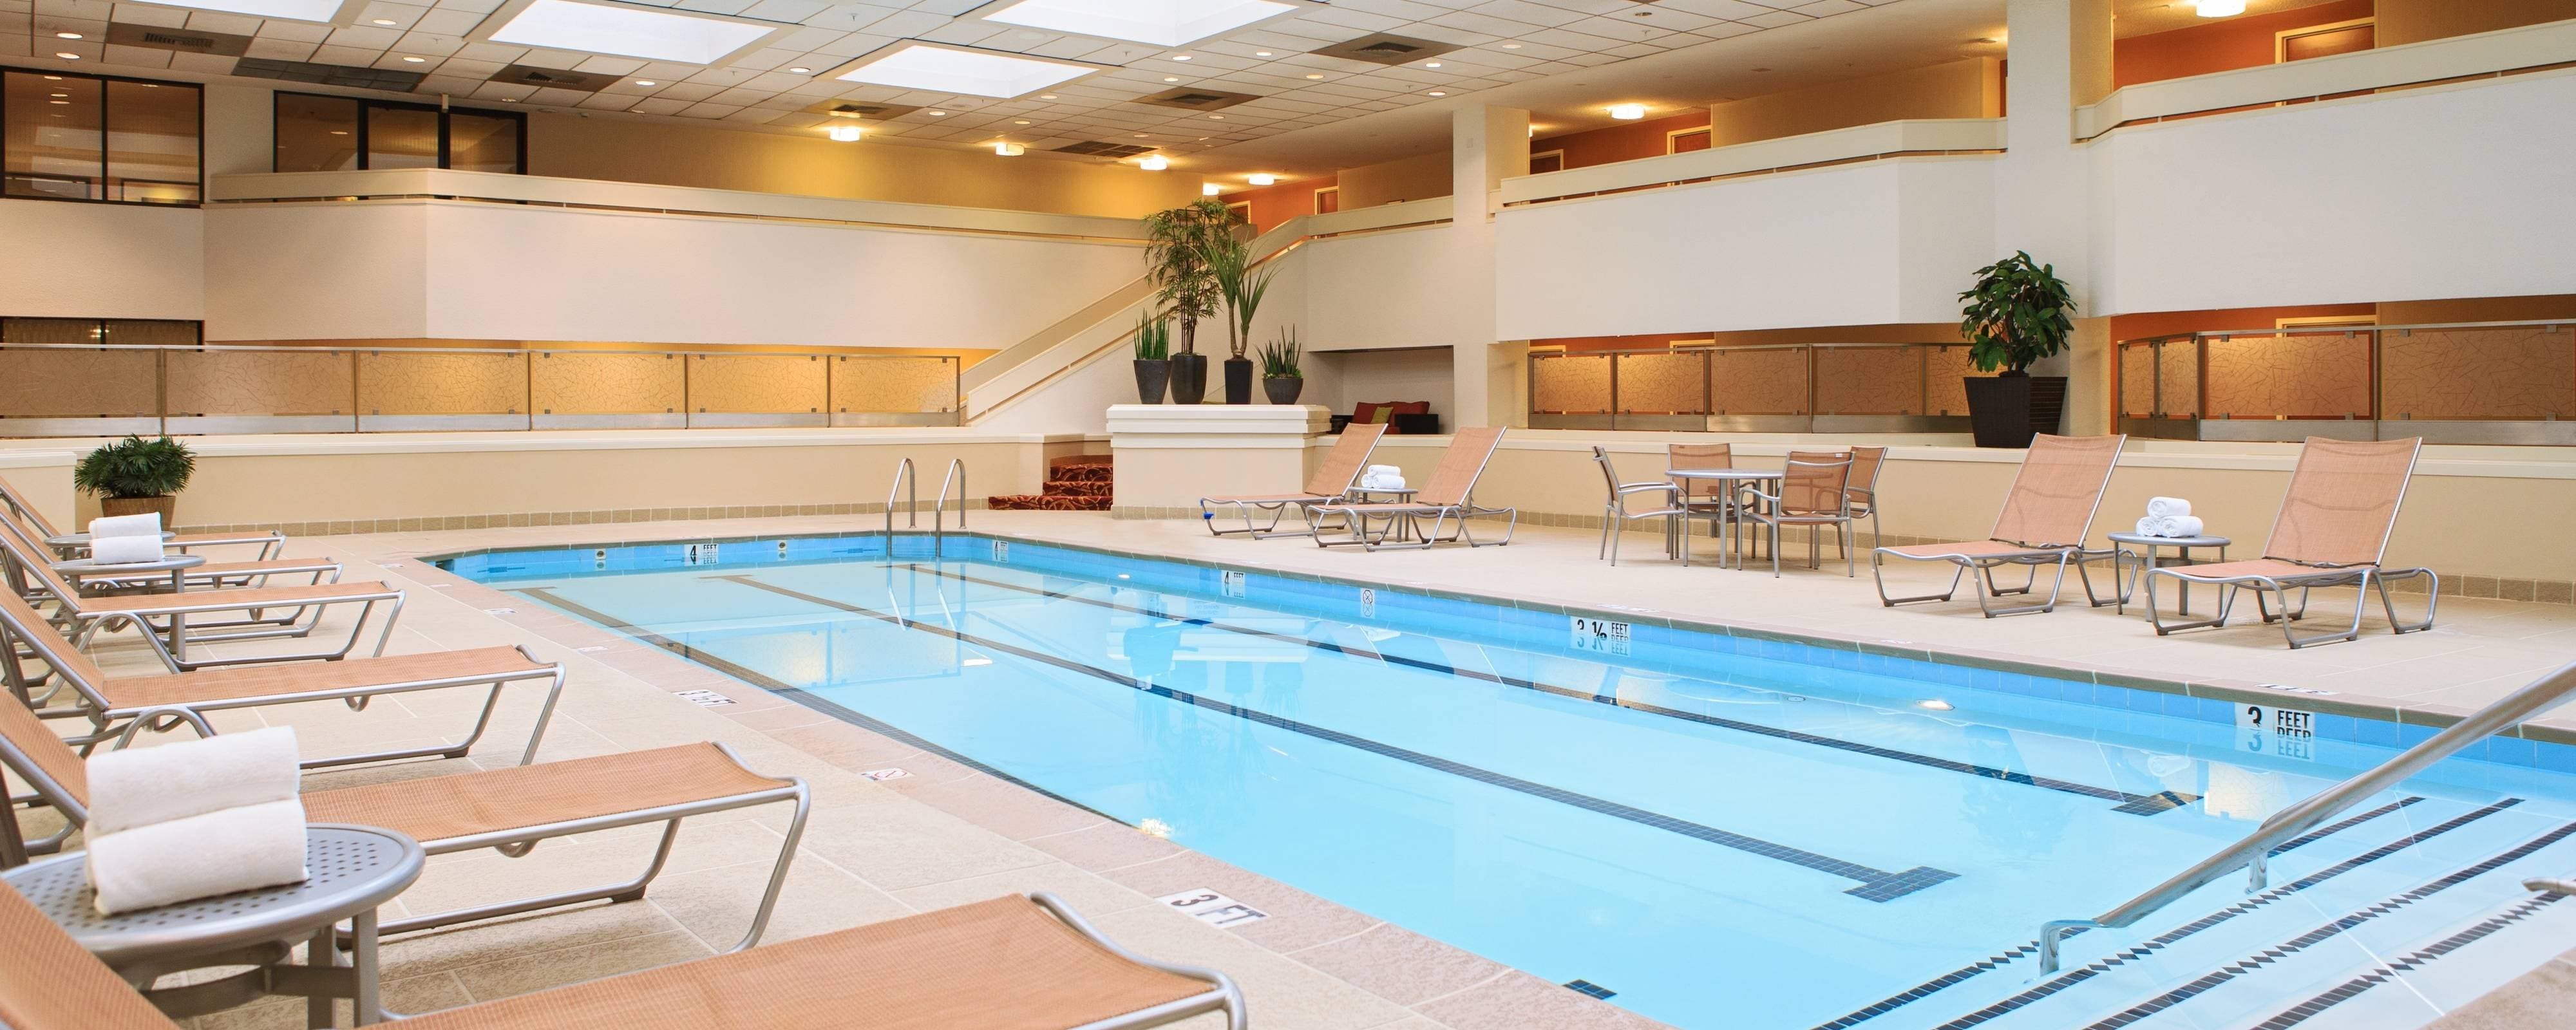 Tysons Corner hotel indoor pool